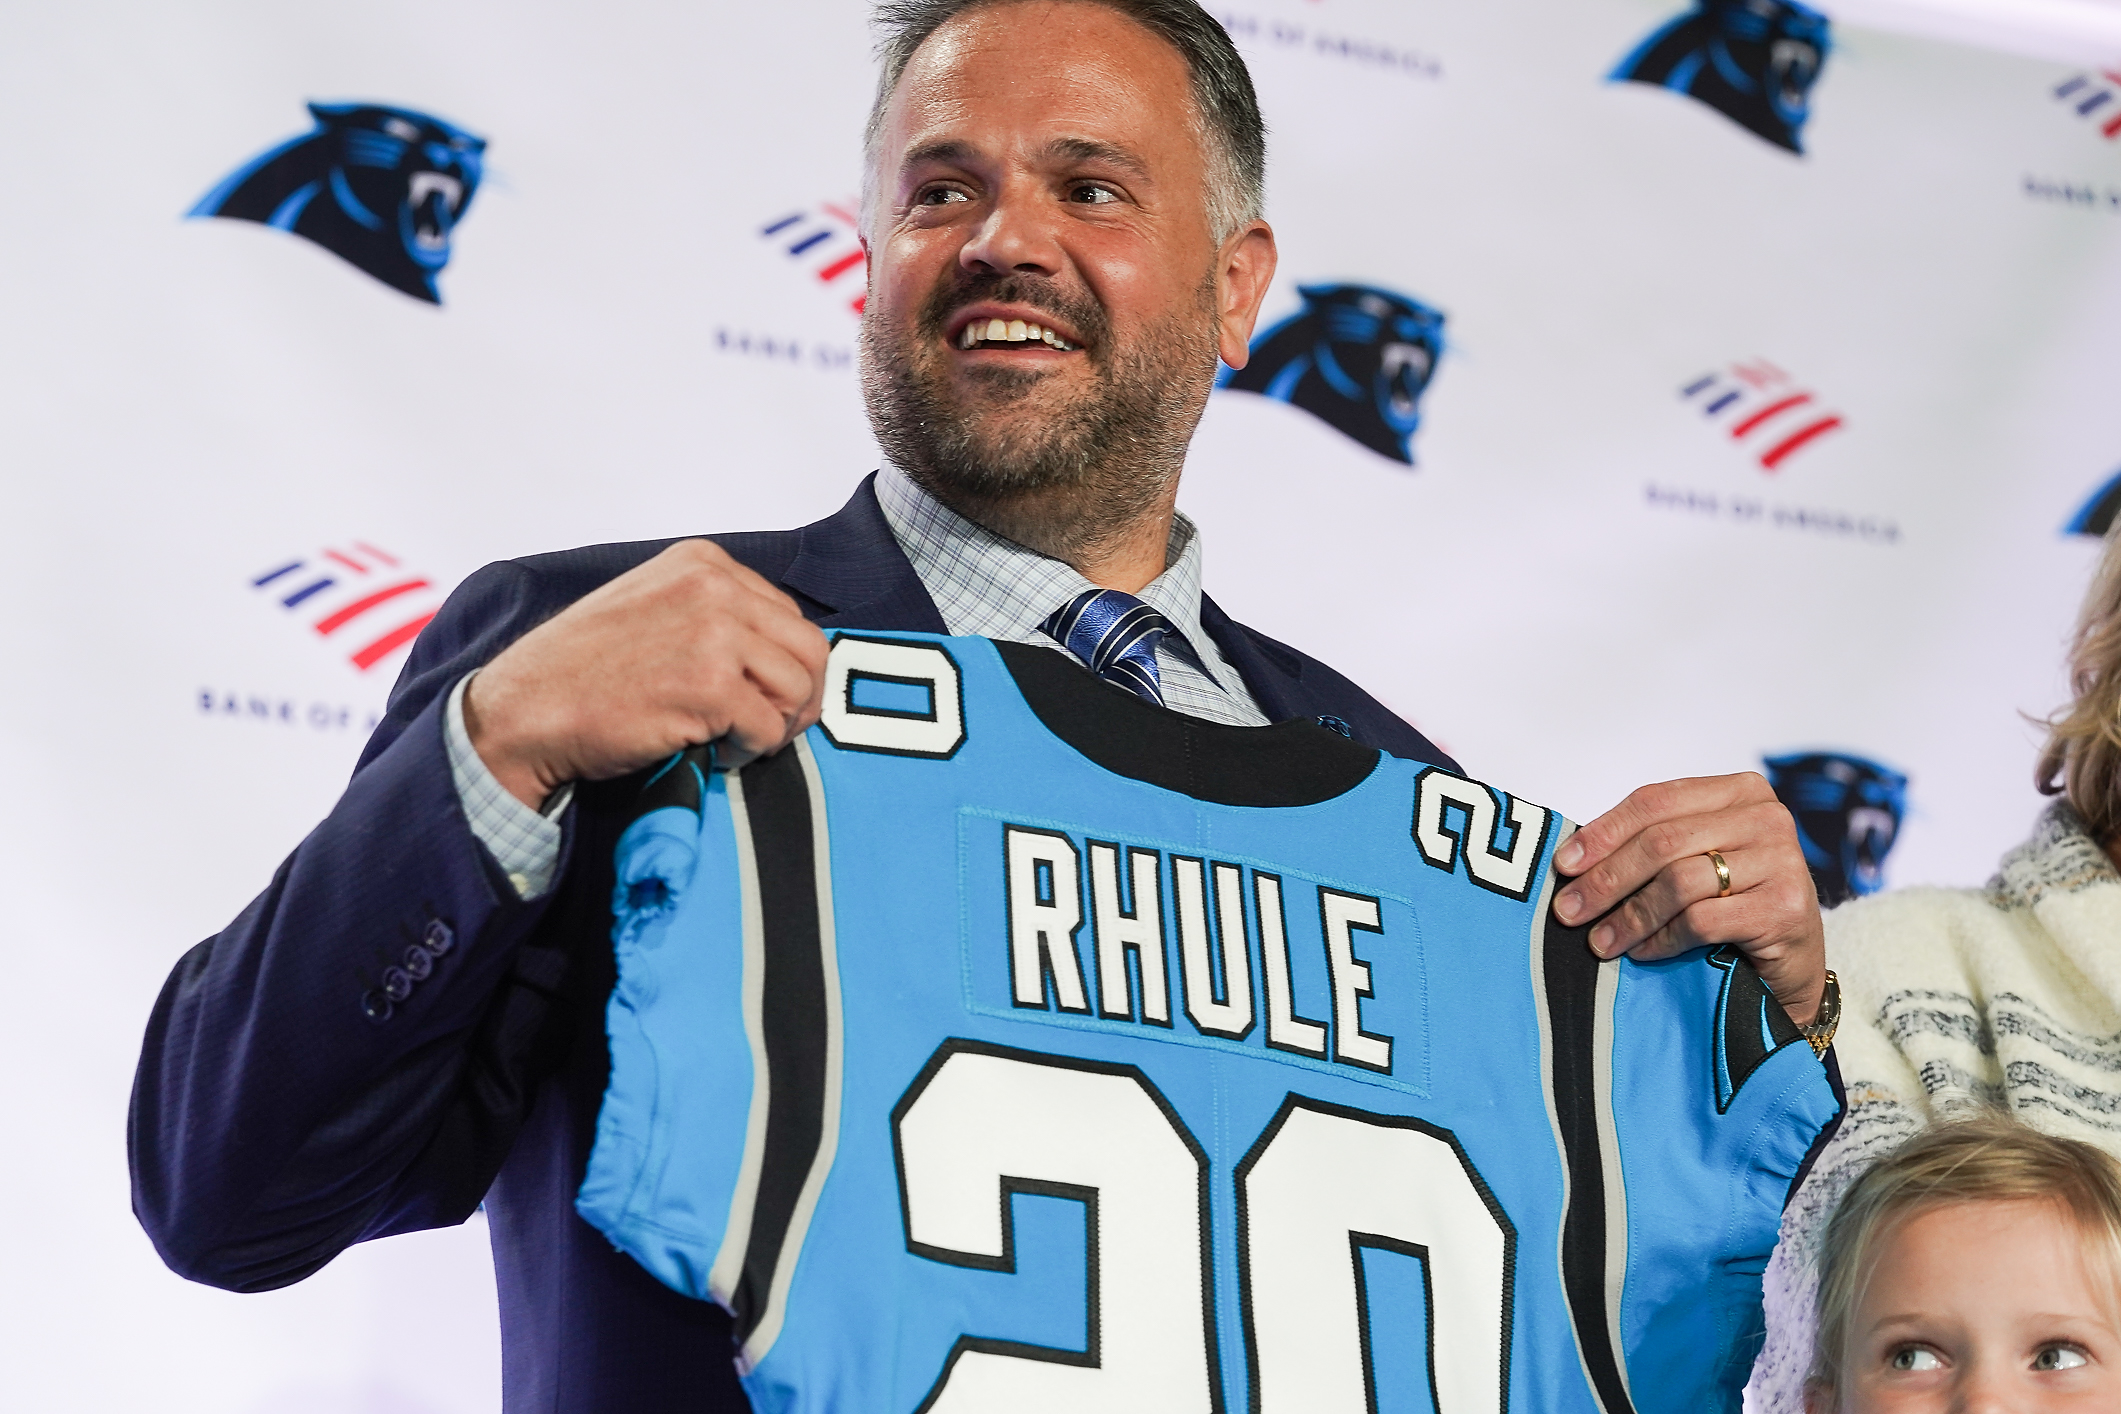 Who Will Have a Better First Year? Rhule or Rivera?